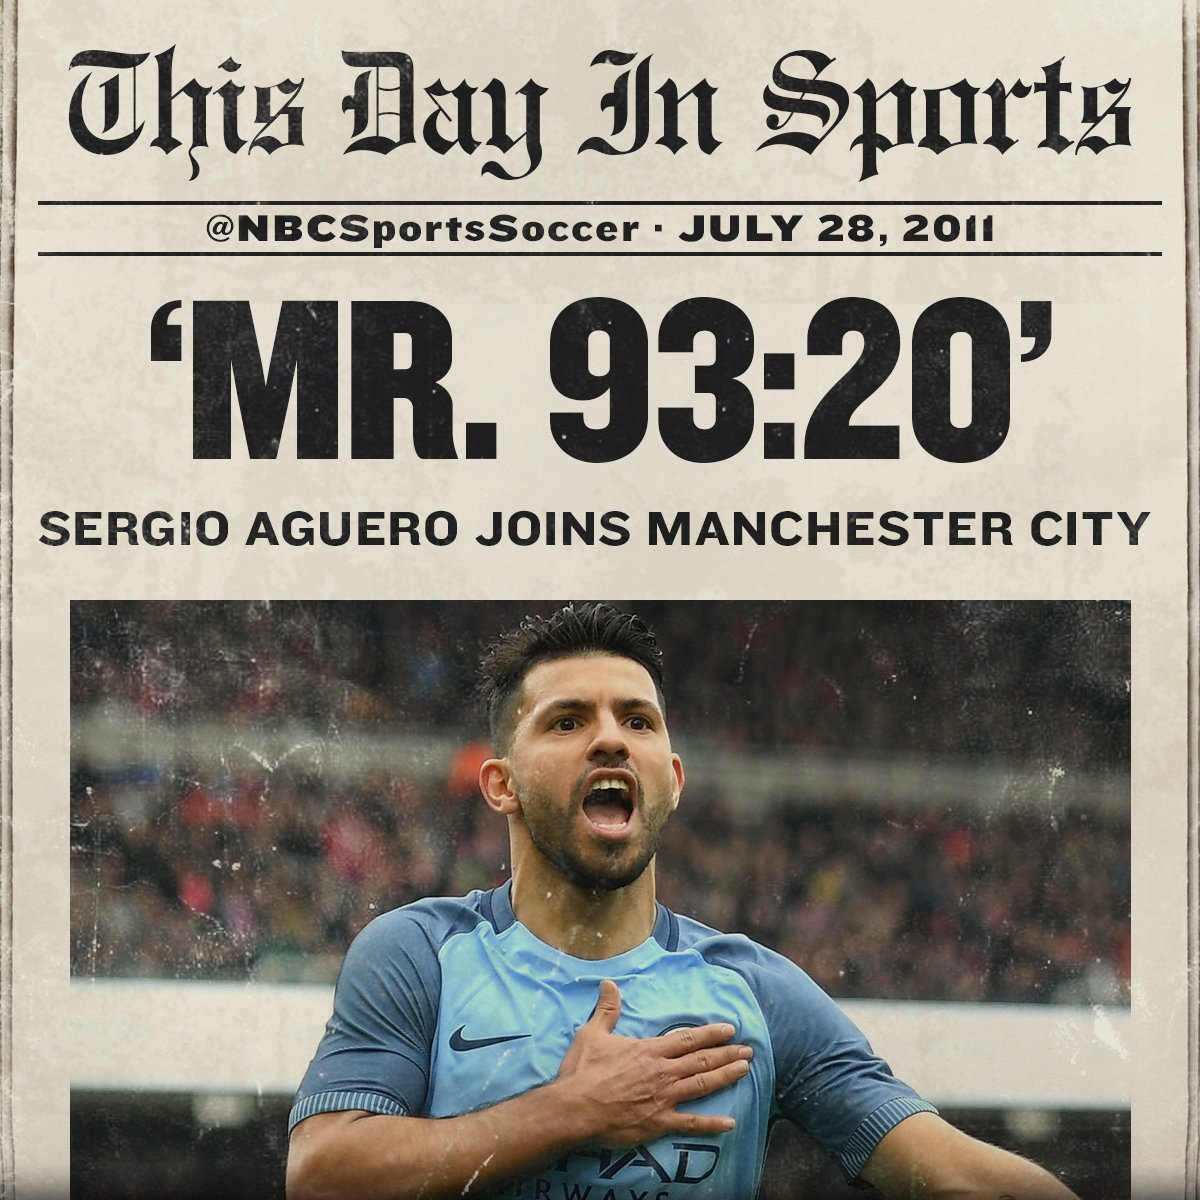 #OnThisDay in 2011, @aguerosergiokun signed for @ManCity!